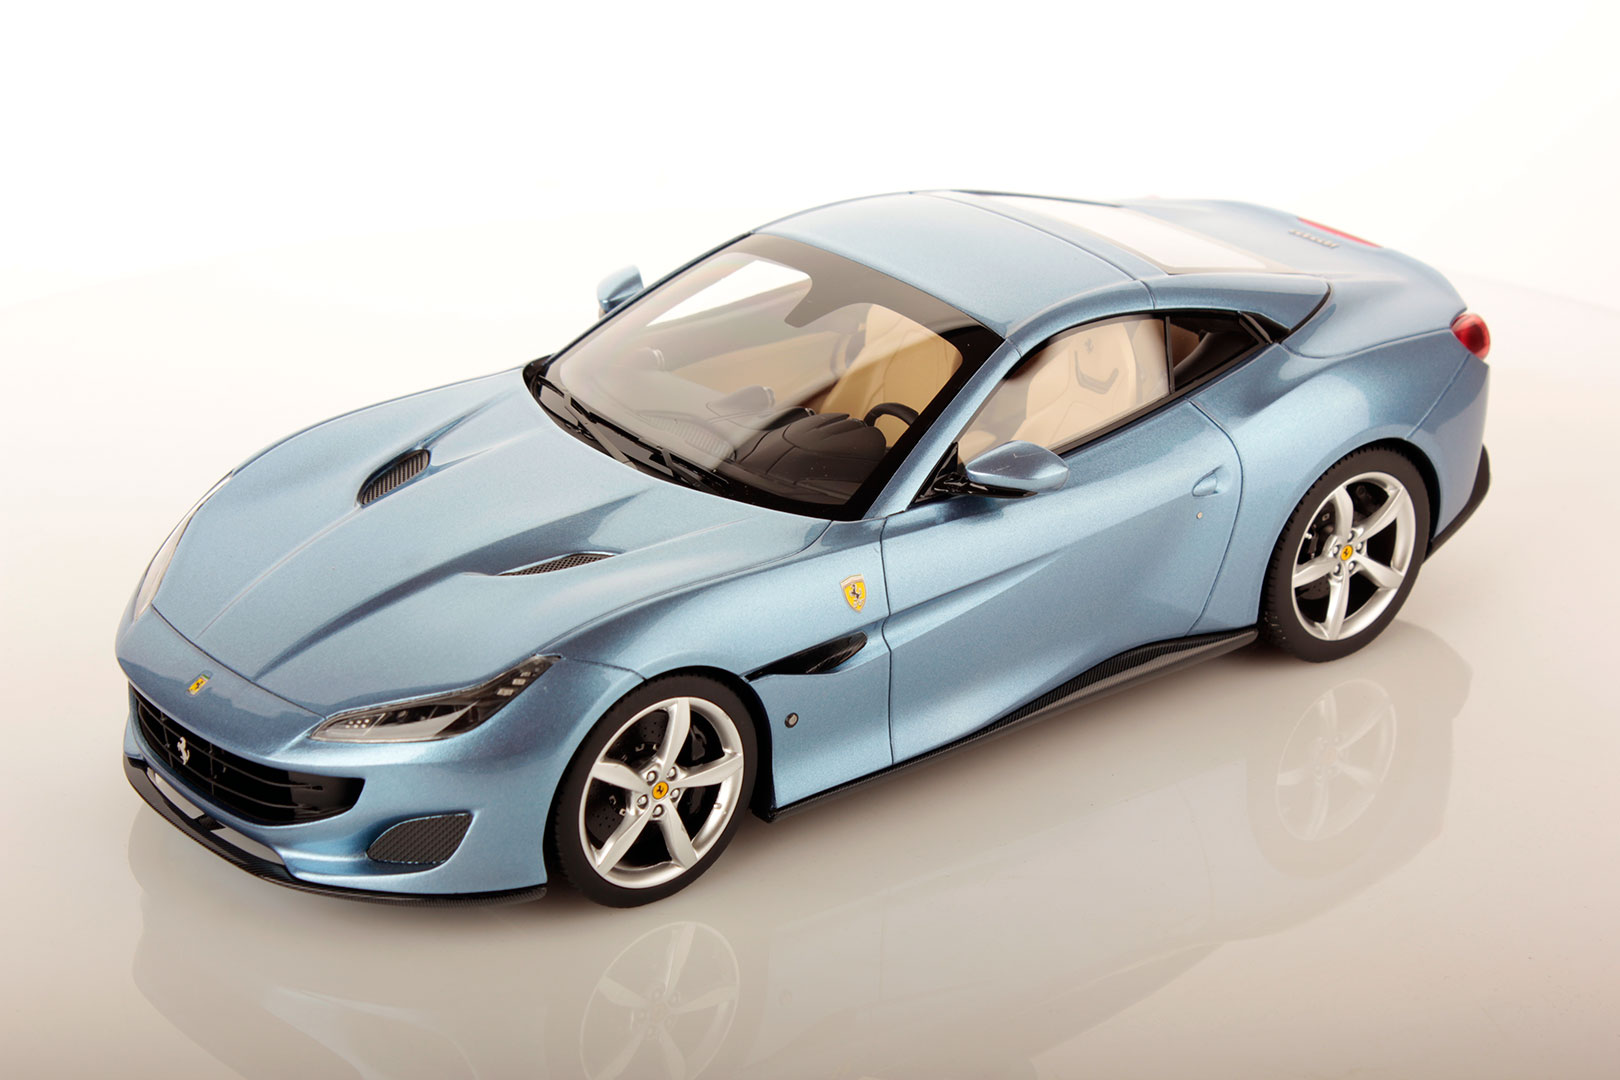 ferrari portofino 1:18 | mr collection models